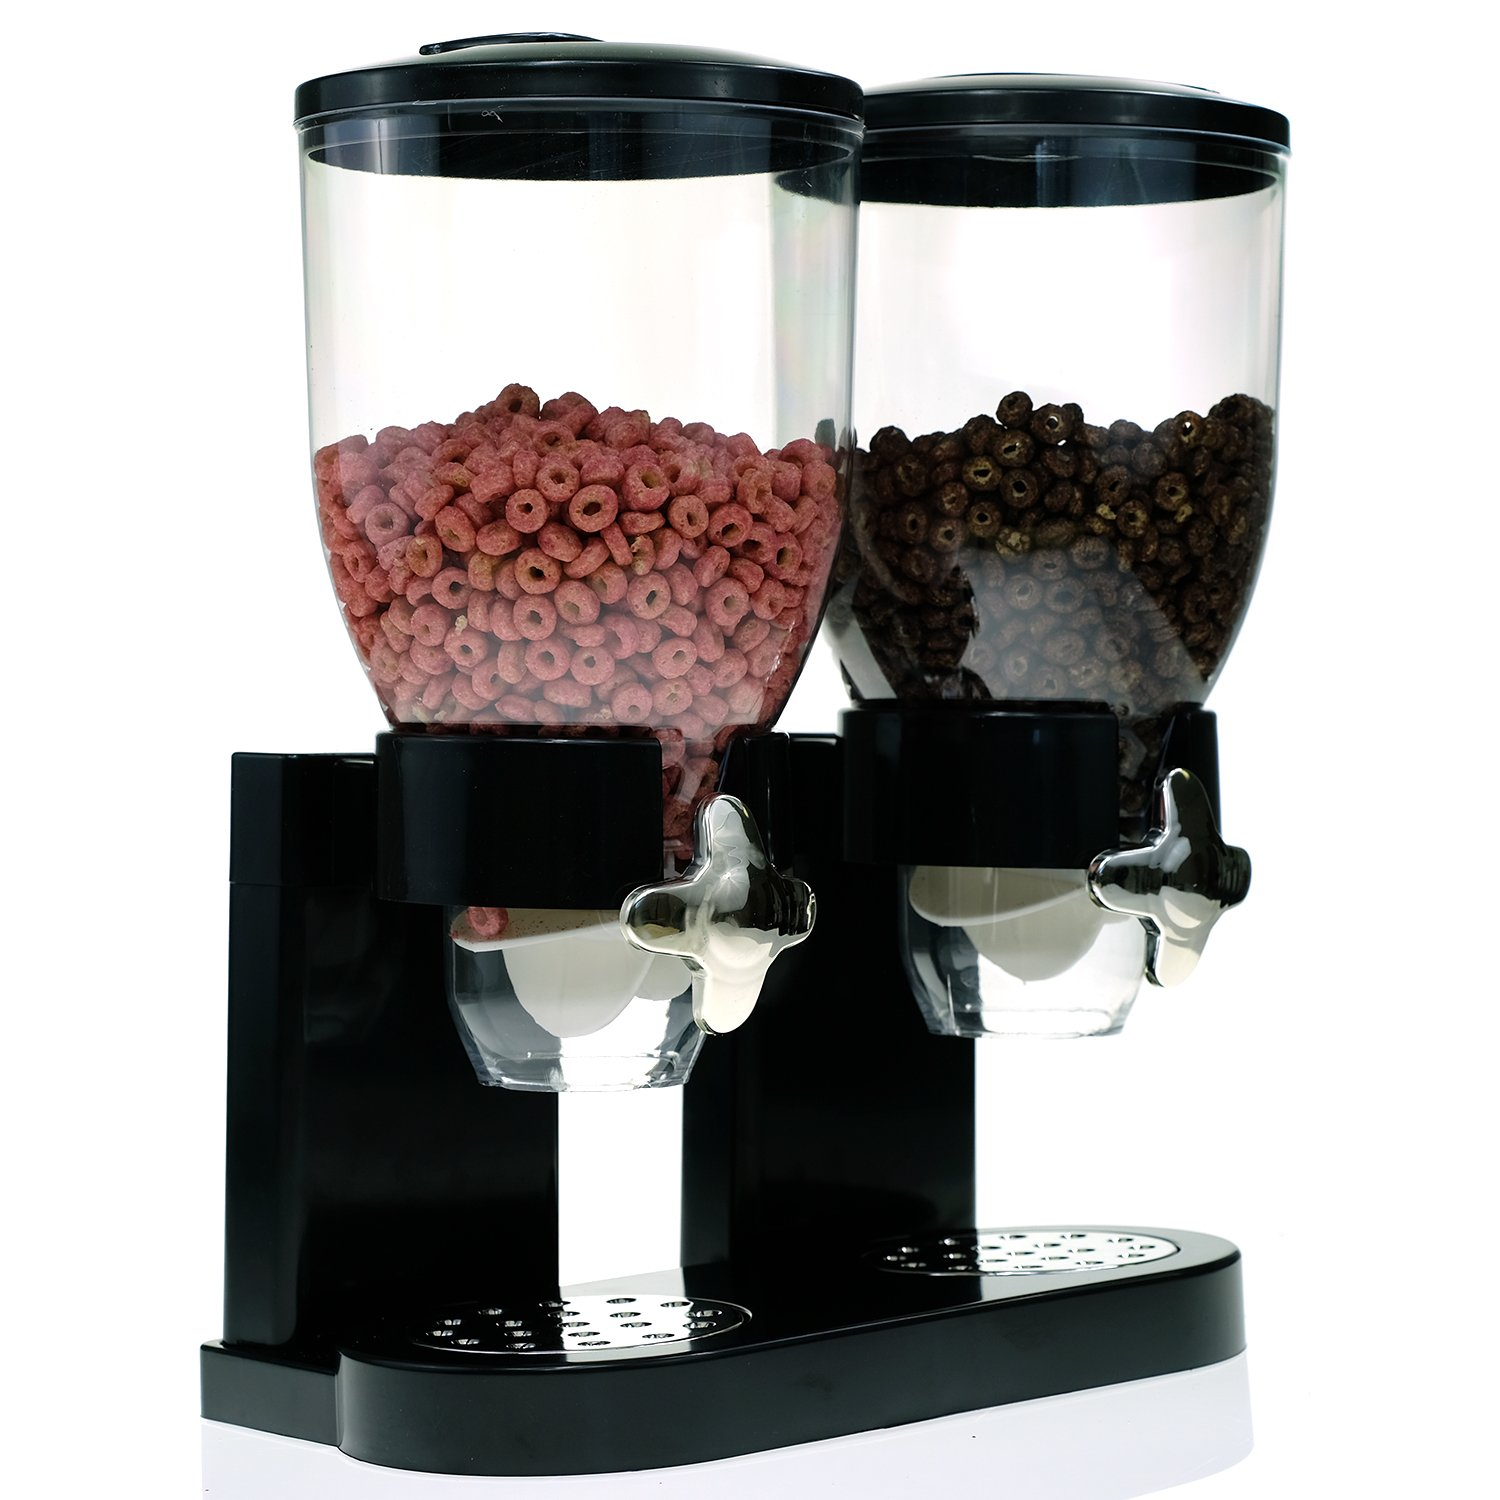 Modern Dry Food Dispenser with Dual Portion Control - Black & Chrome or White & Chrome Available (Dual Dispenser, Black)